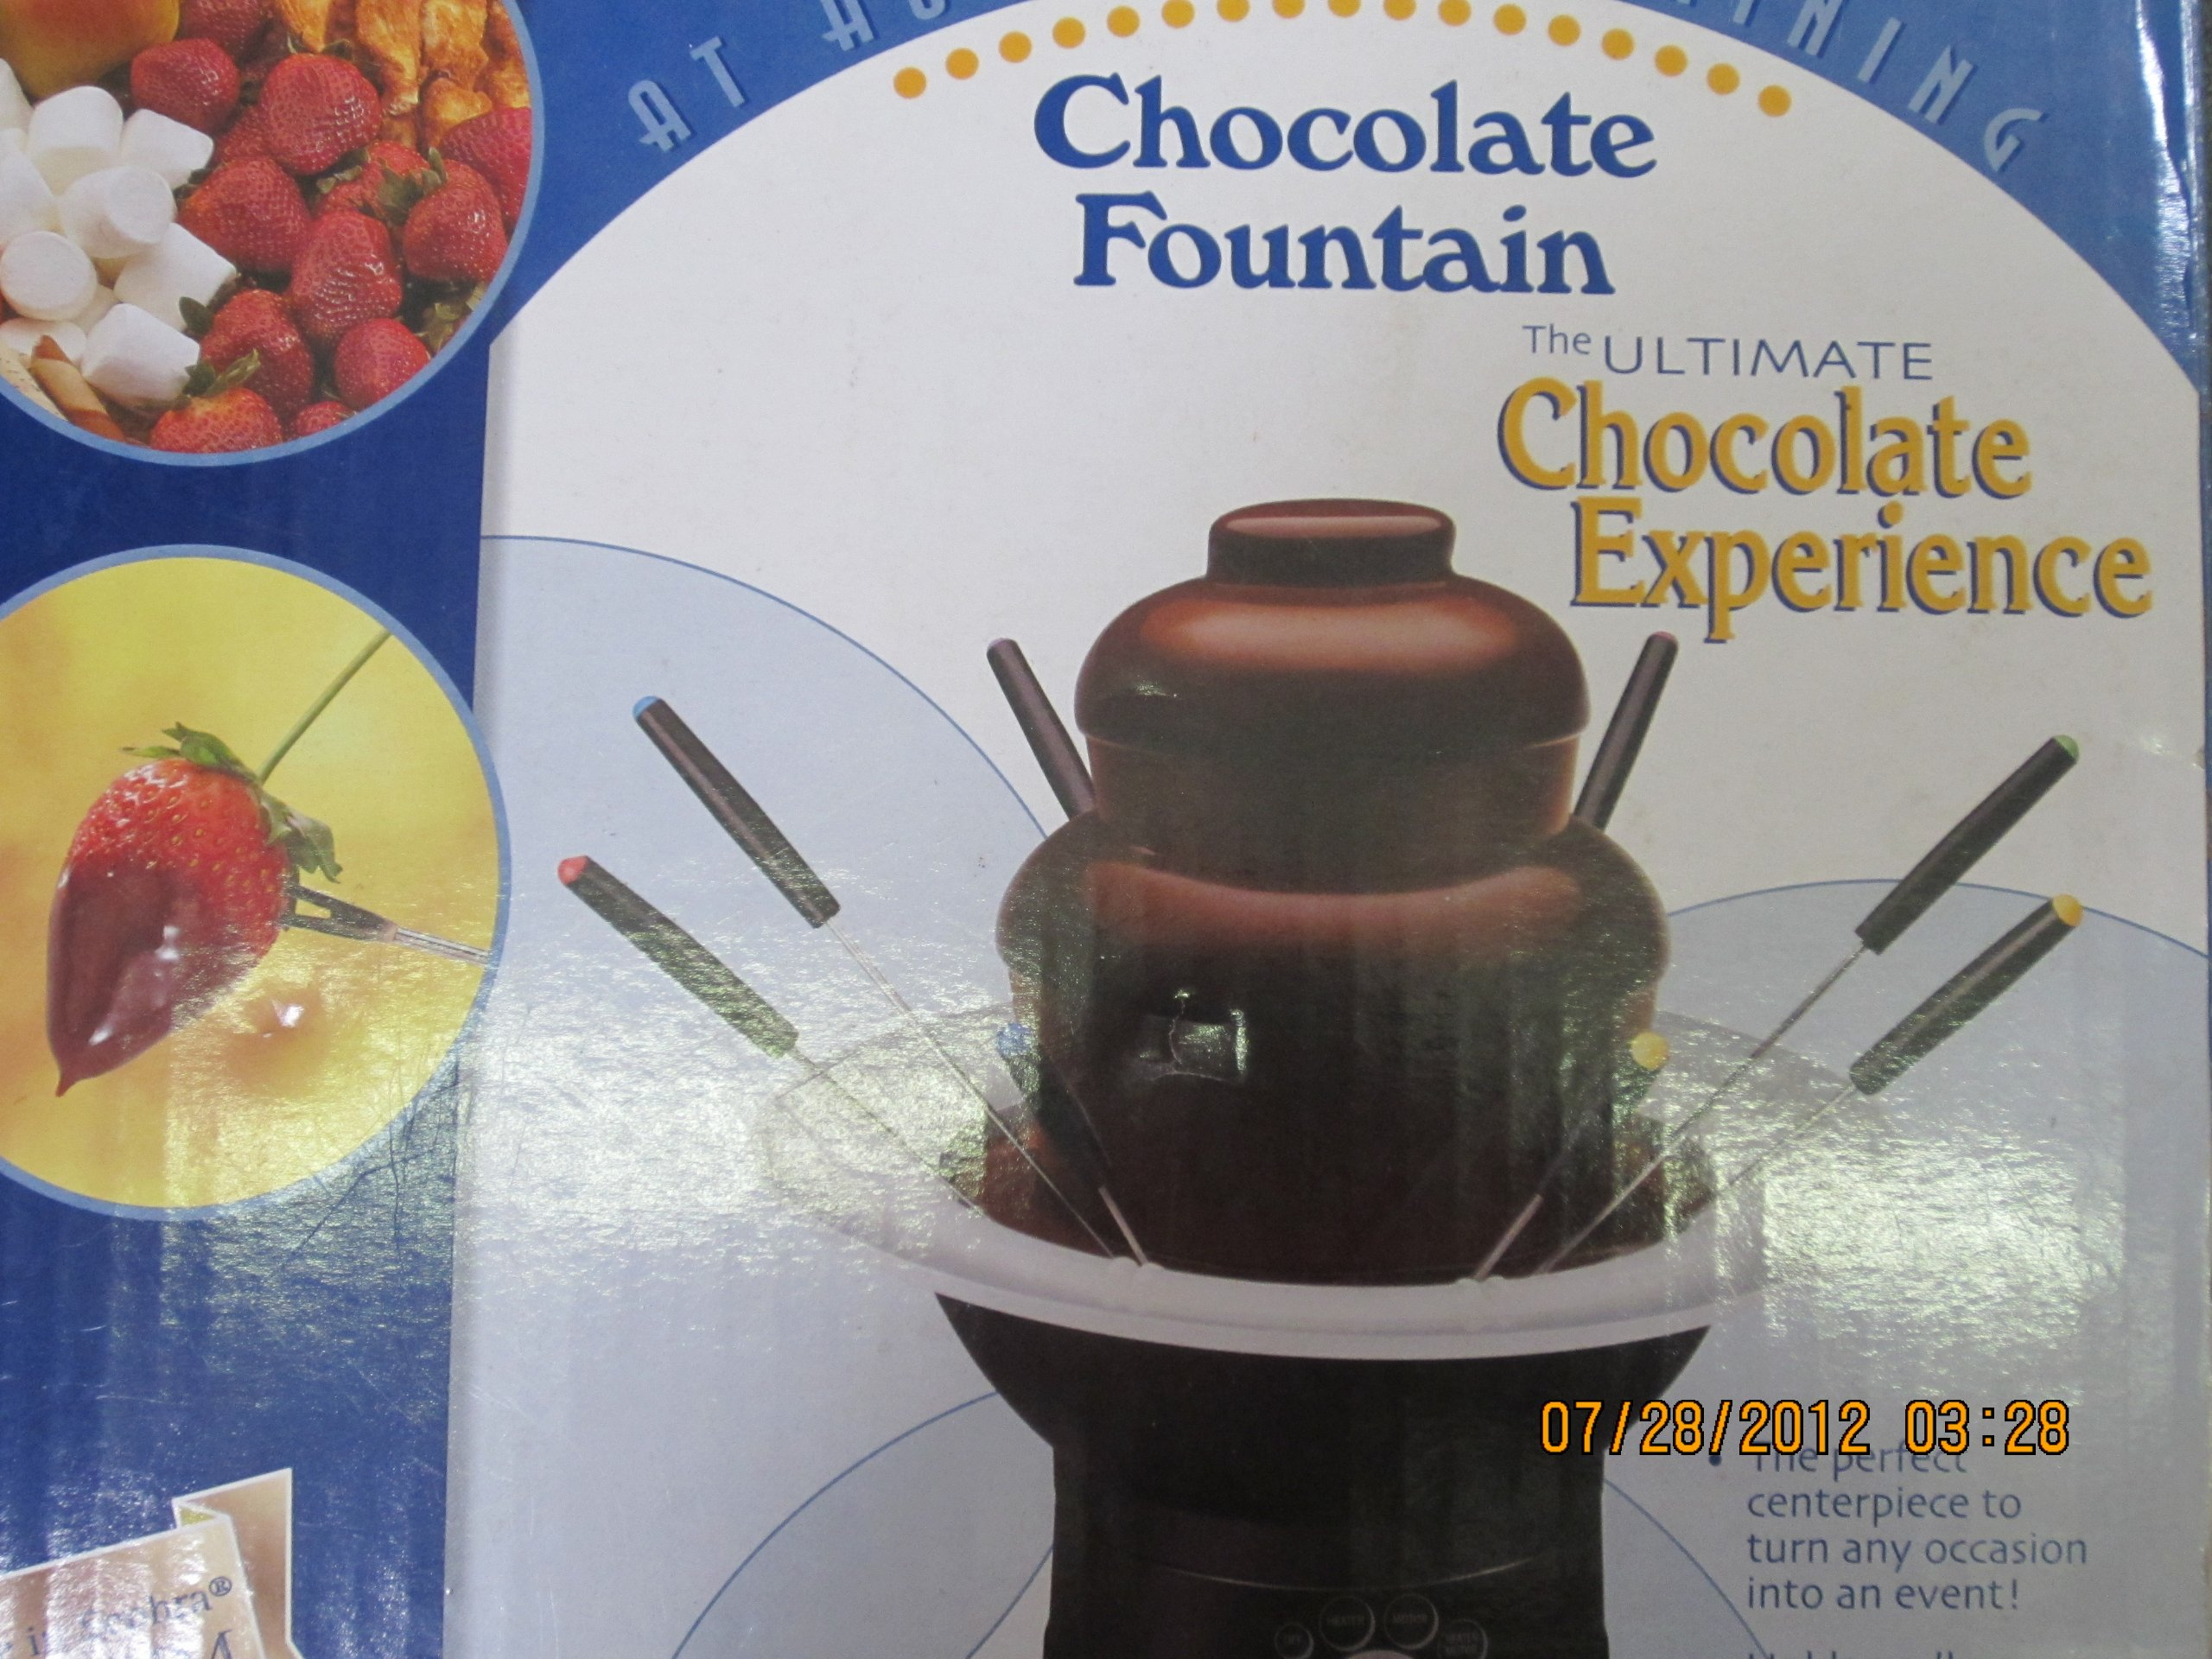 Rival Electric Chocolate Fountain with Fondue Skewers